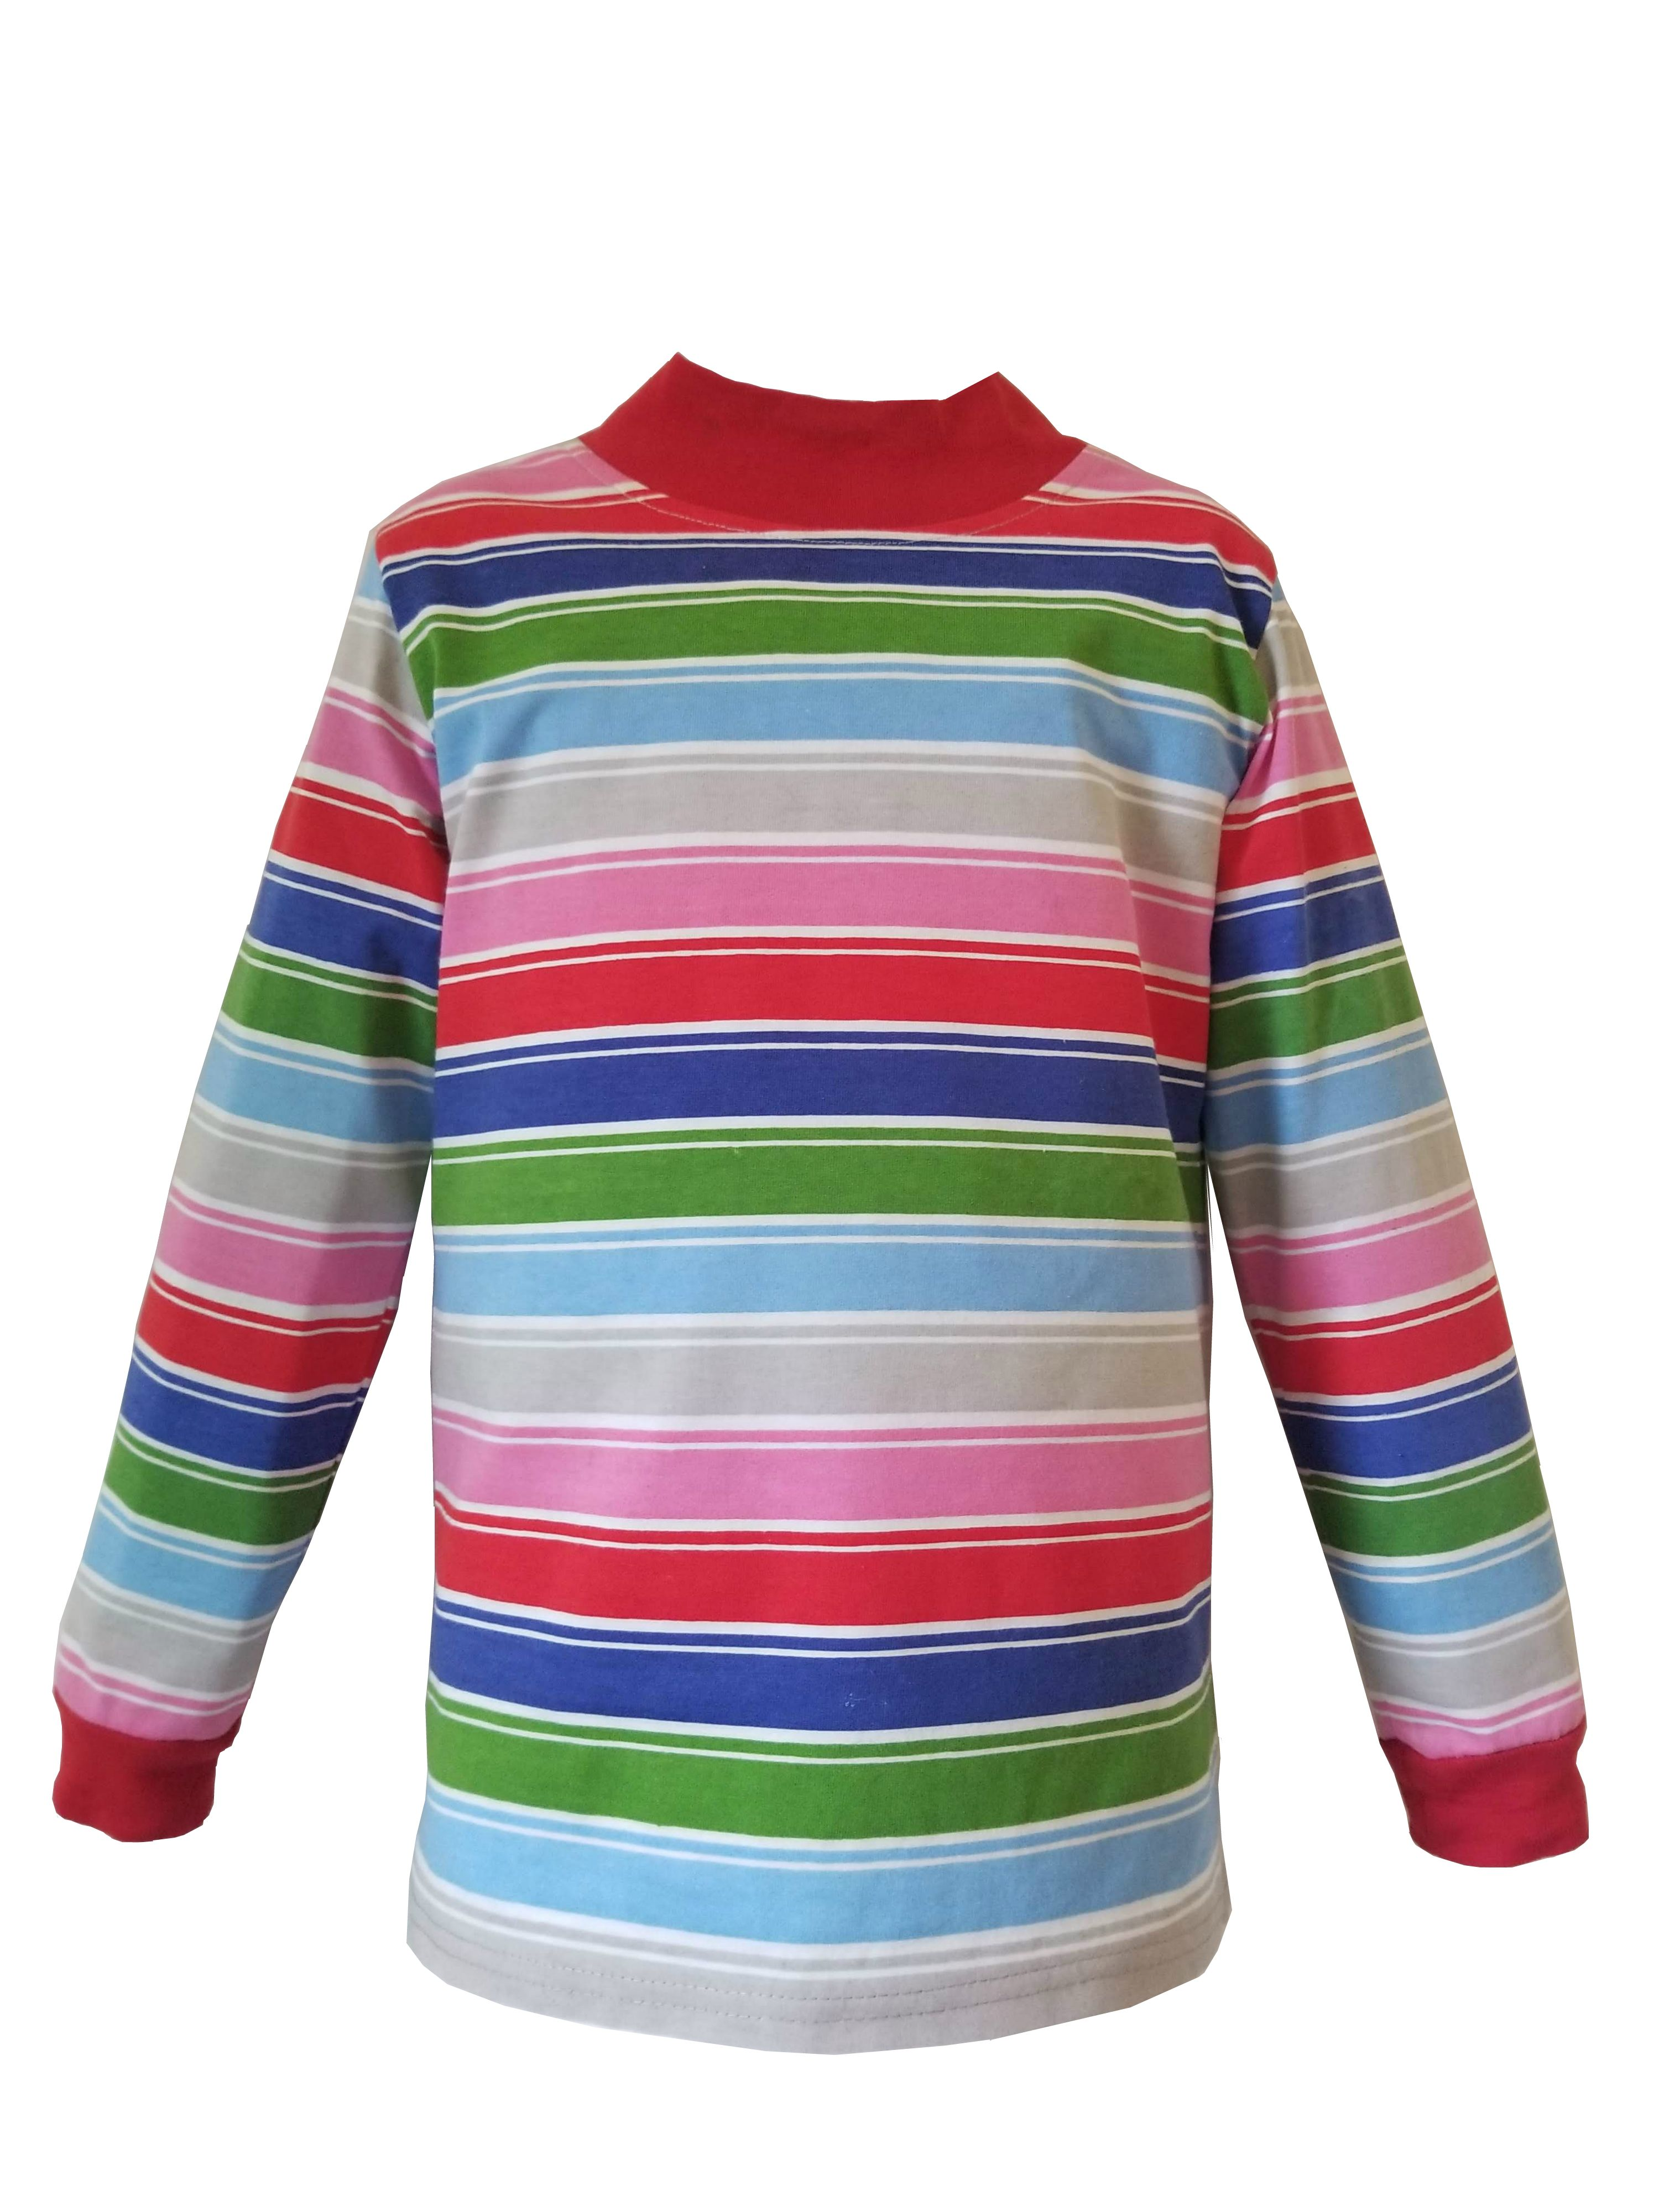 f2f82970c Unlike most Halloween Costumes, this rainbow-striped t-shirt can be washed  and worn as with any other t-shirt. Combine with a pair of jean overalls  that can ...